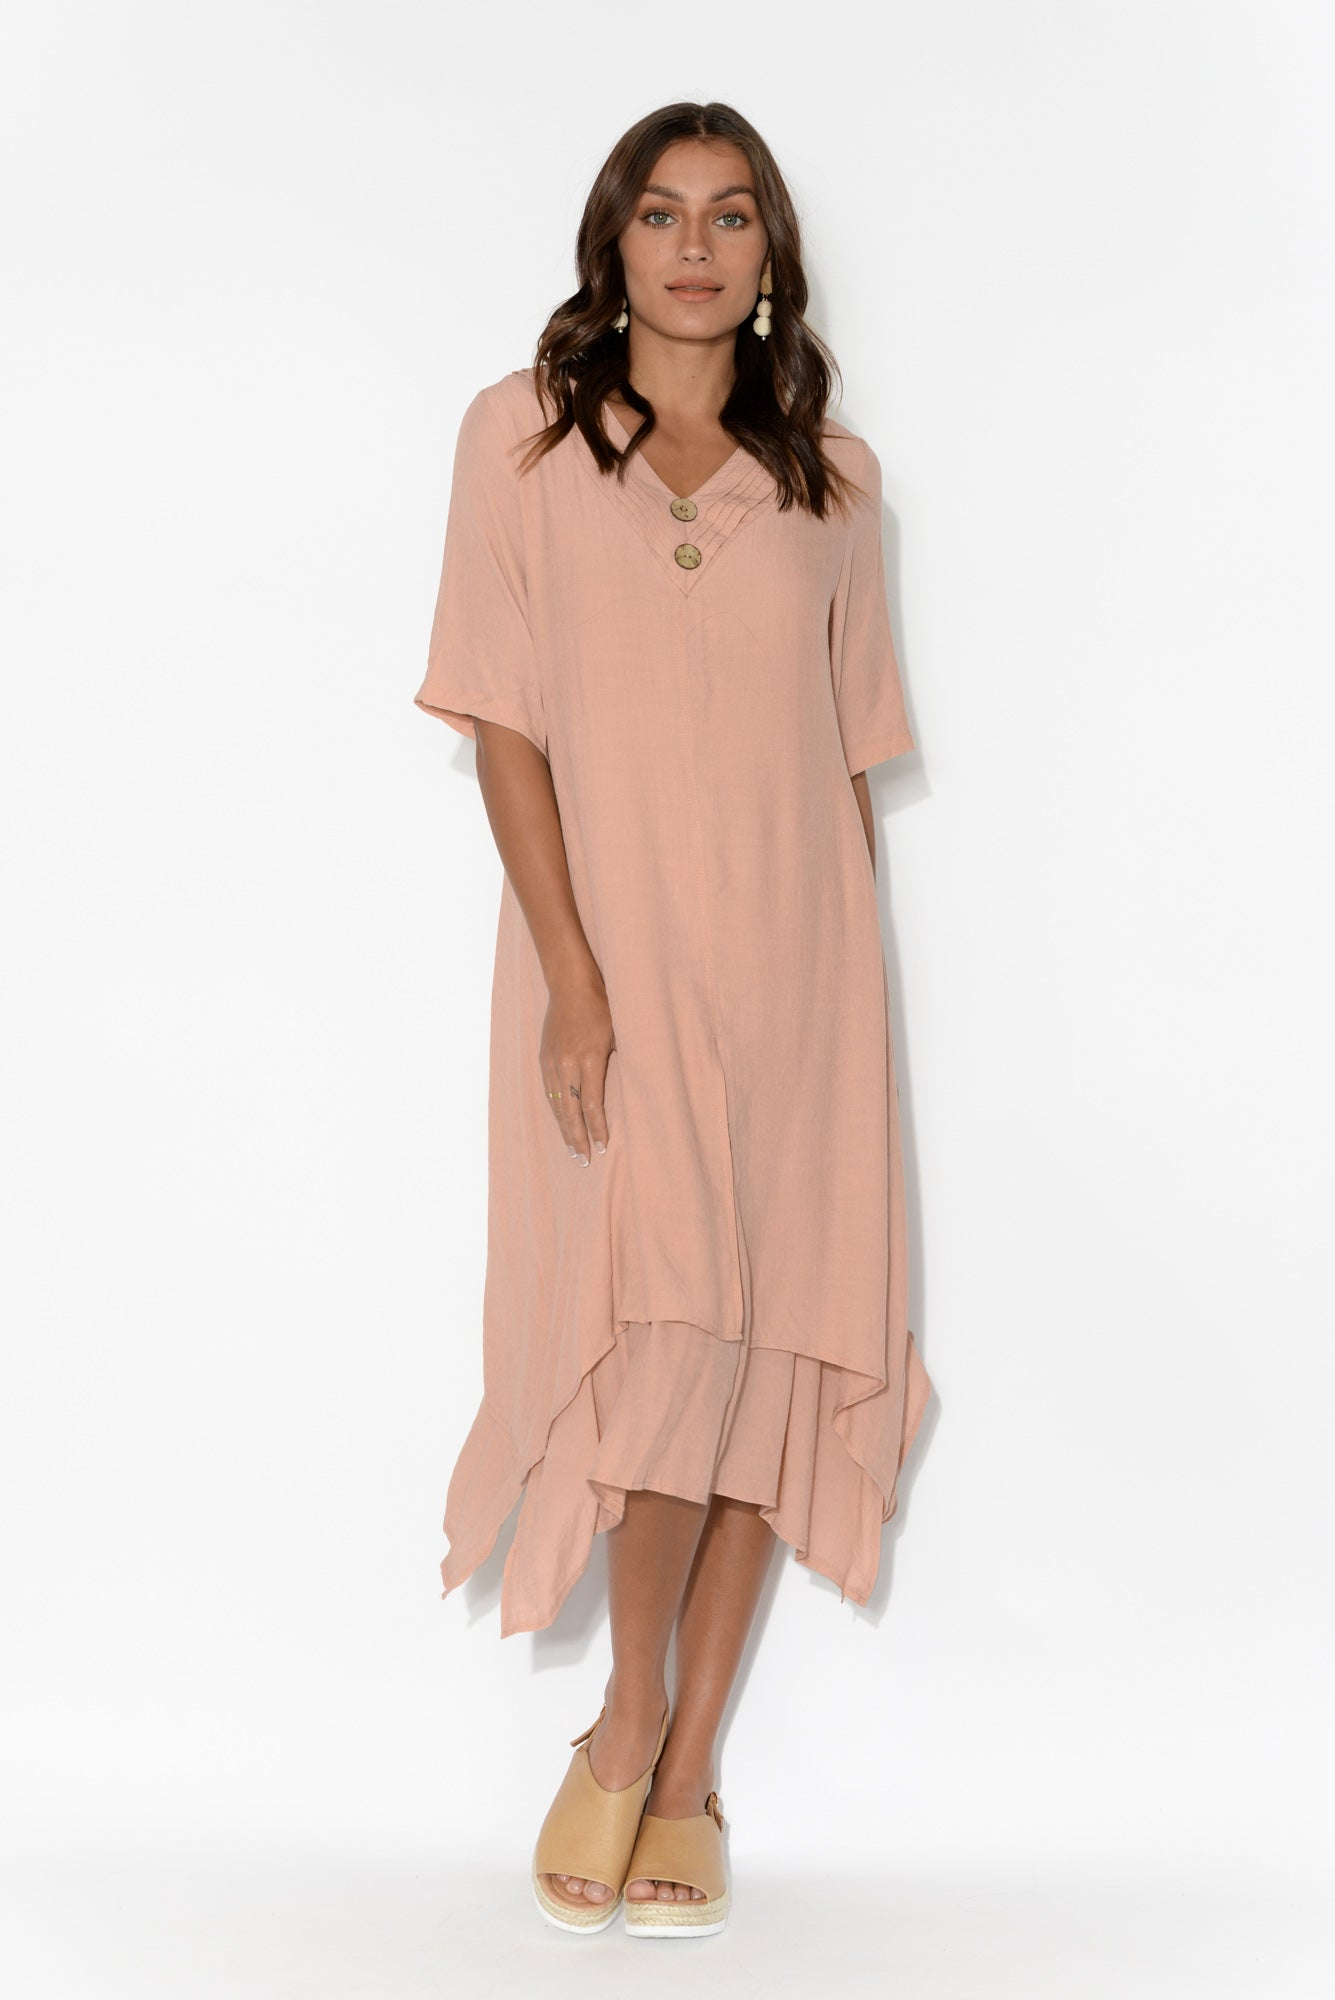 Nala Pink Double Layer Dress